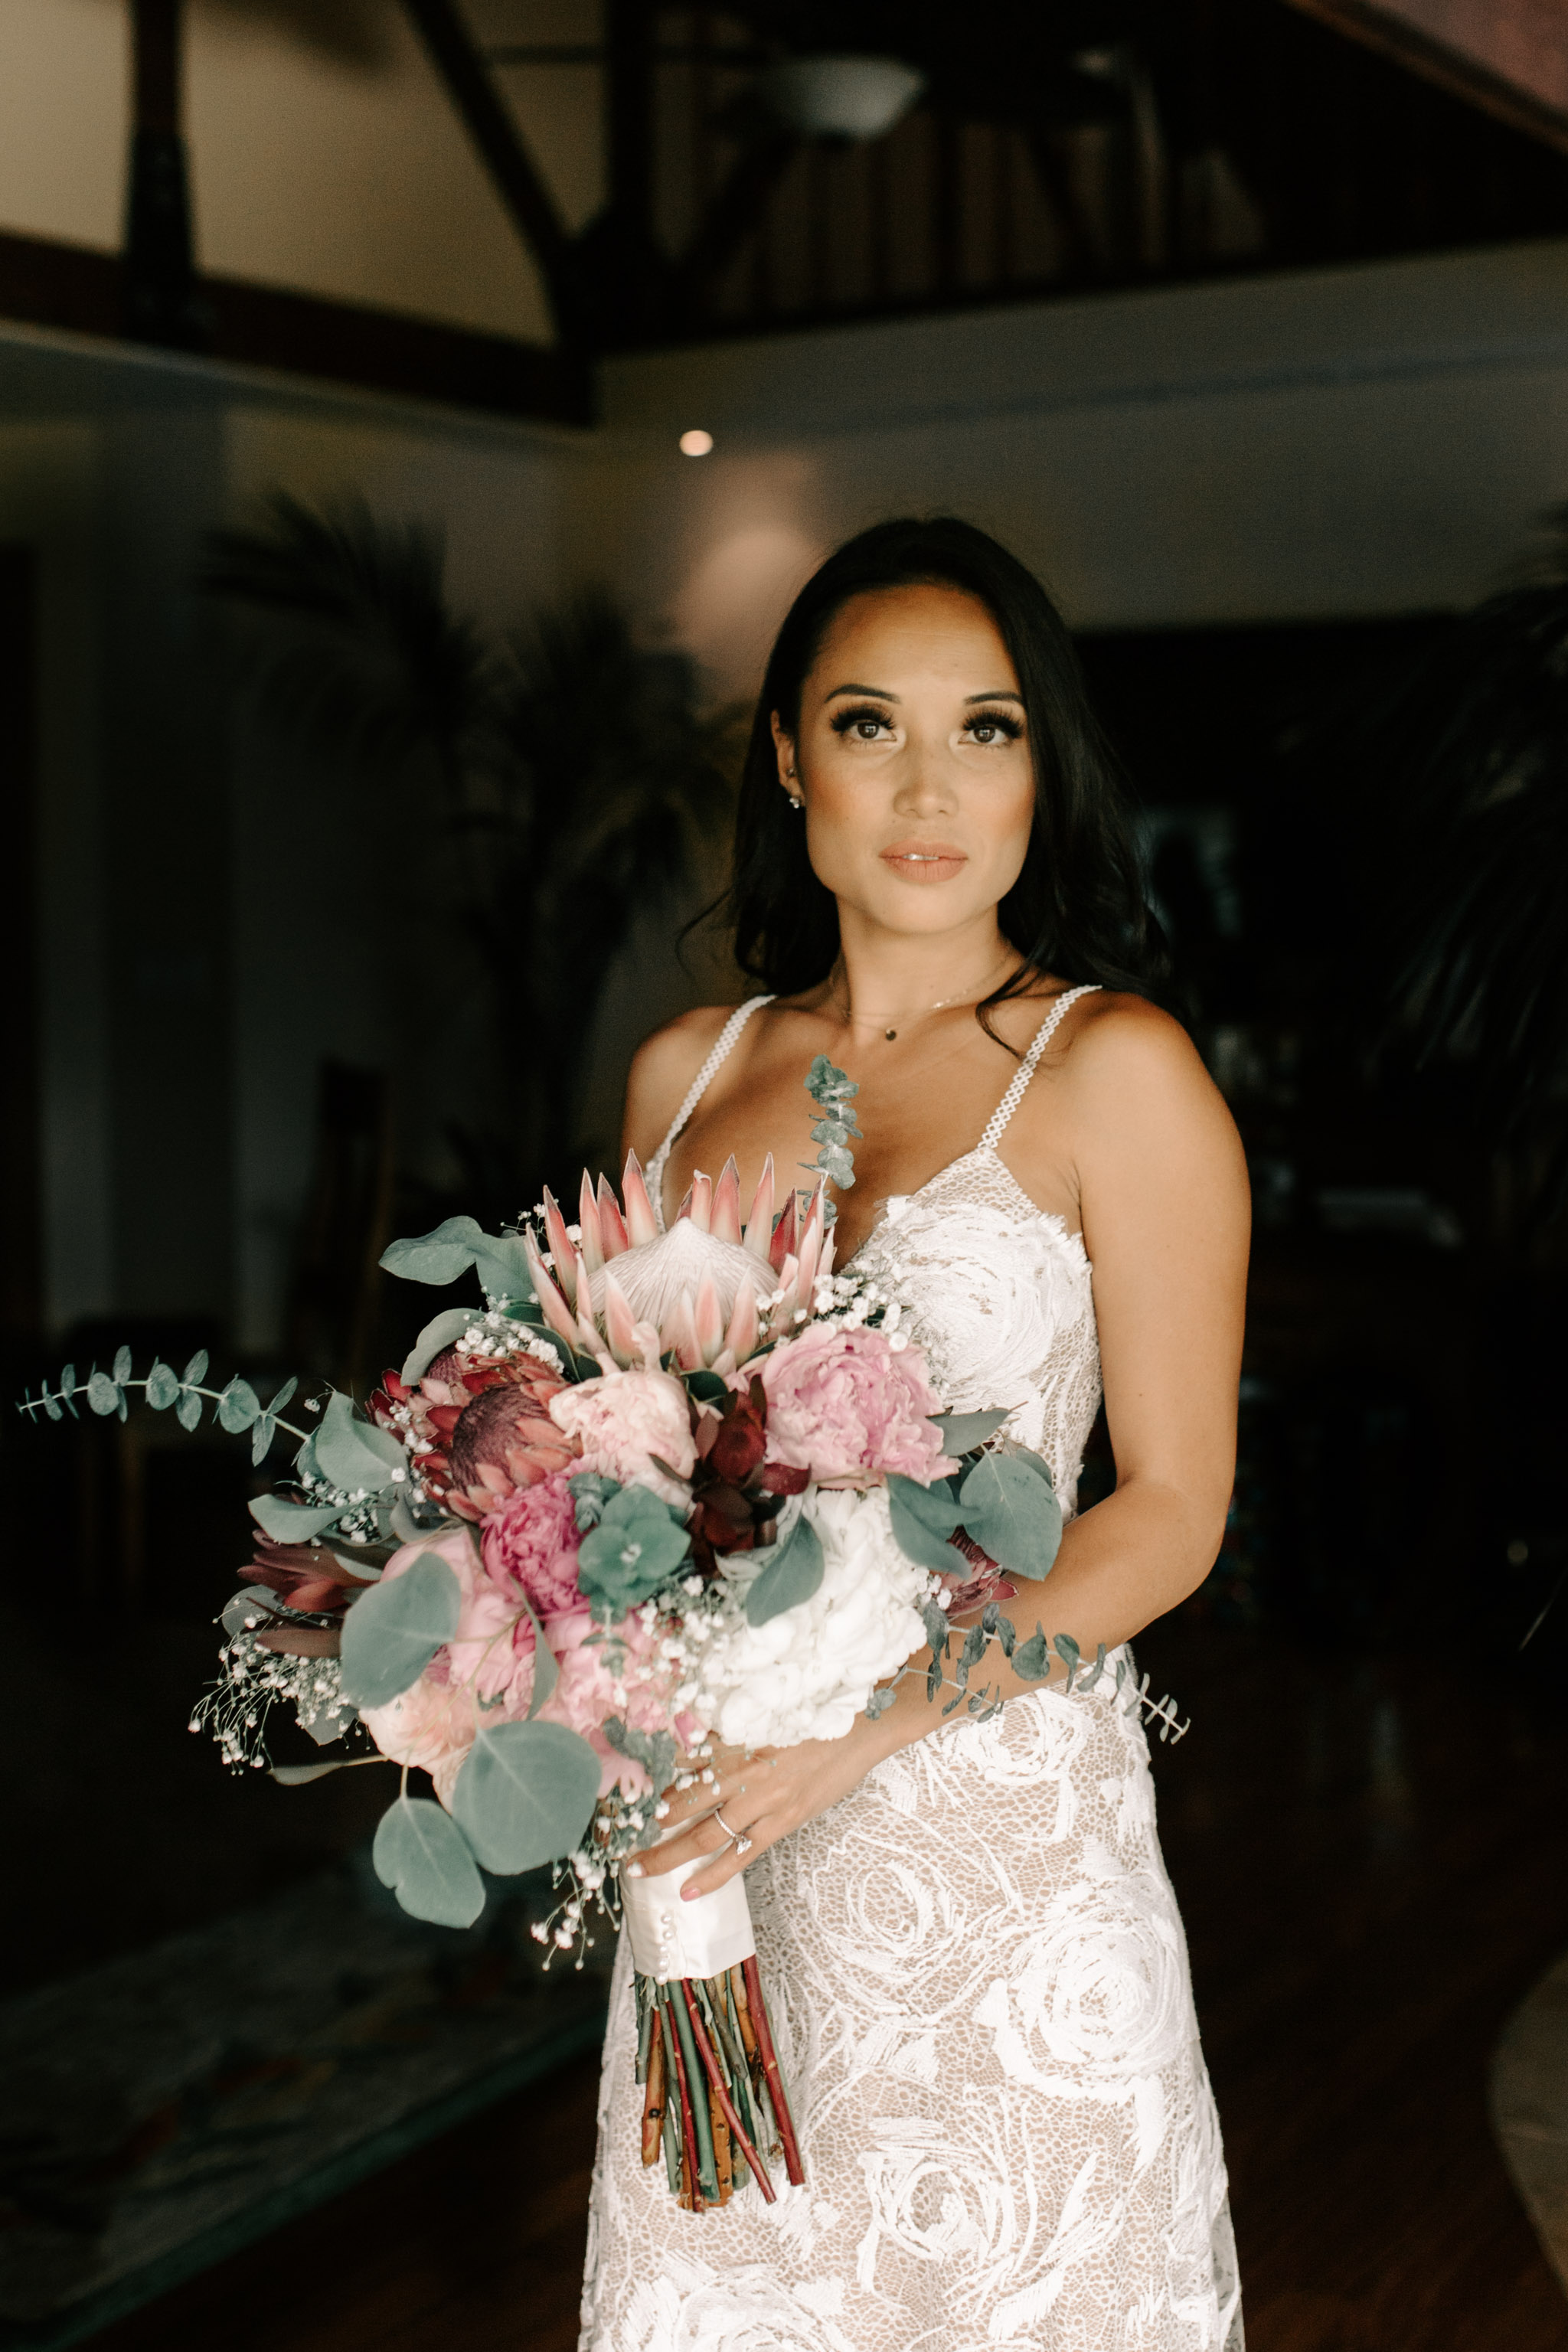 Gorgeous Bridal Portrait In Grace Loves Lace's Rosa Wedding Gown - Hale Koa Phineas Estate Wedding By Oahu Wedding Photographer Desiree Leilani